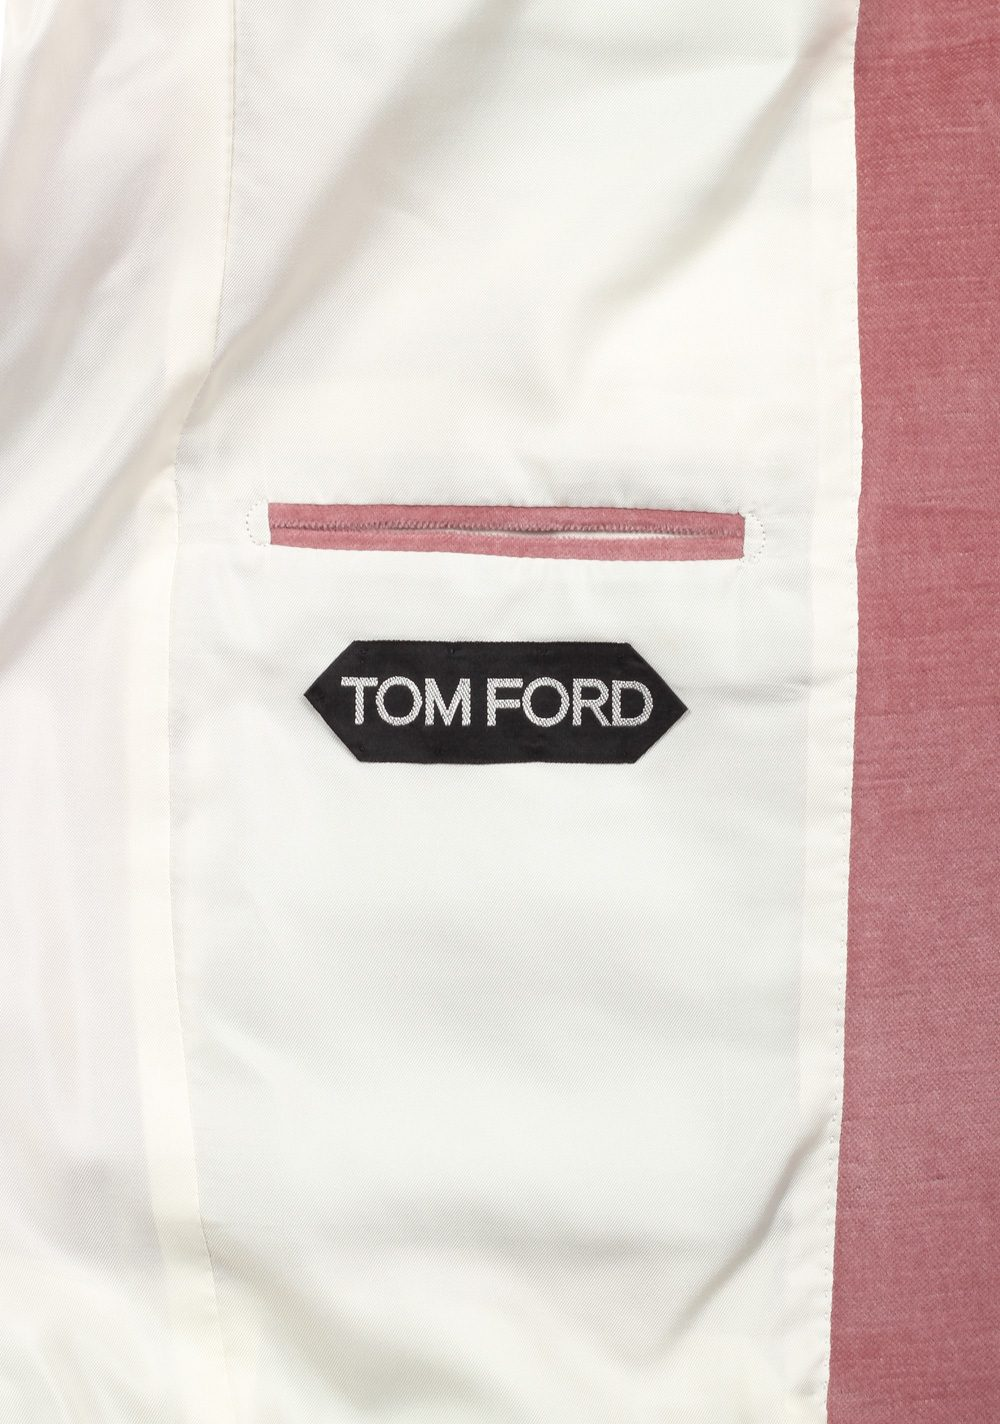 TOM FORD Shelton Pink Velvet Suit Size 48 / 38R U.S. In Cotton Linen | Costume Limité